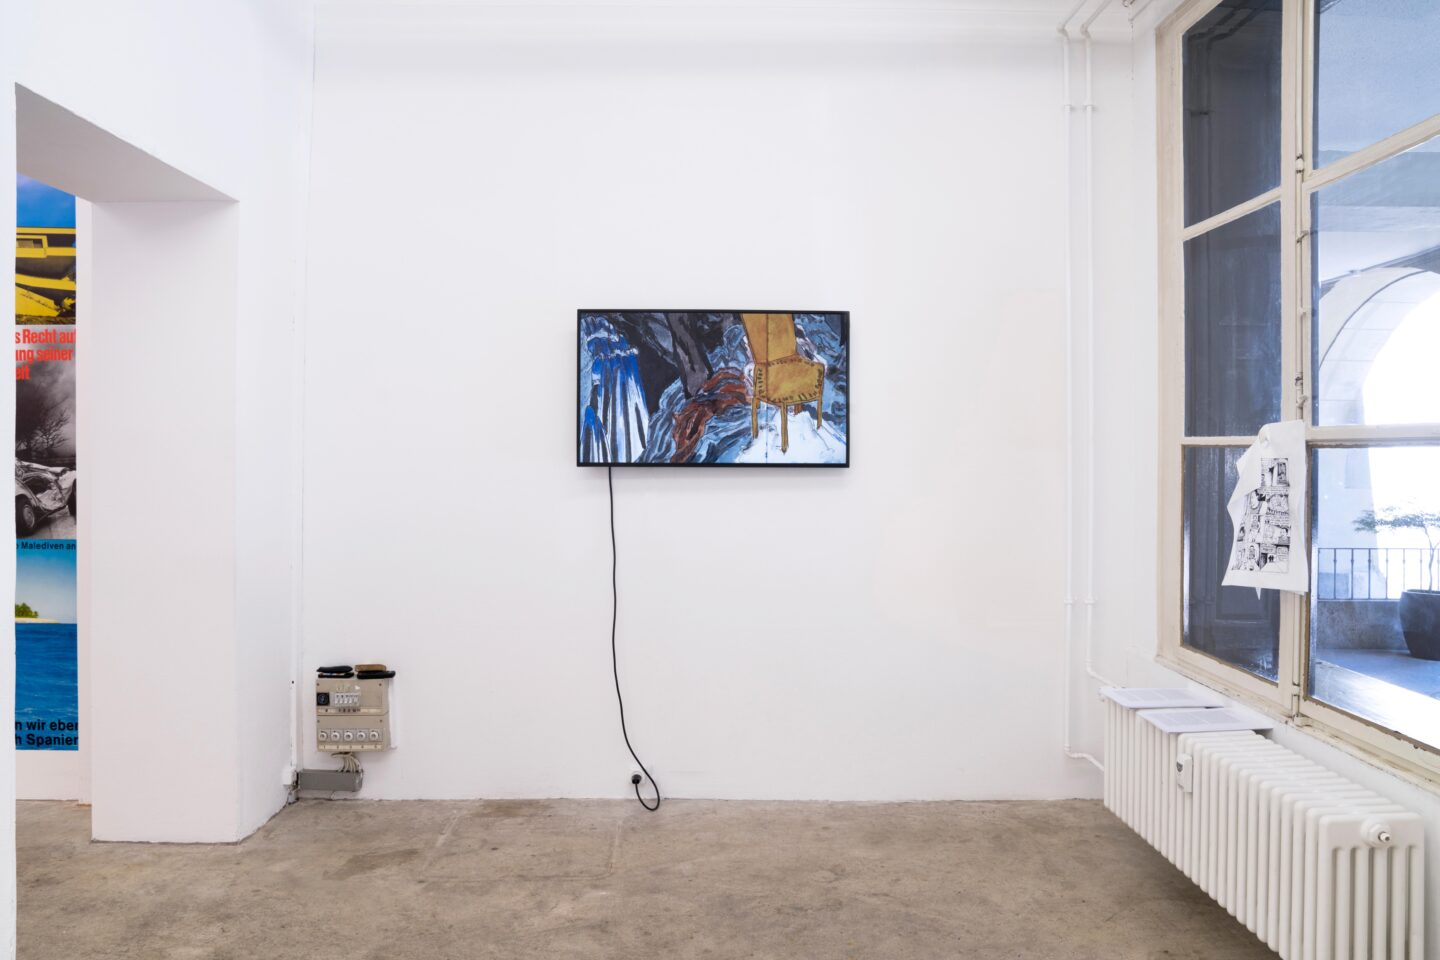 Exhibition View Groupshow «For» at Milieu, Bern, 2020 / Photo: Claude Barrault / Courtesy: the artists and Milieu